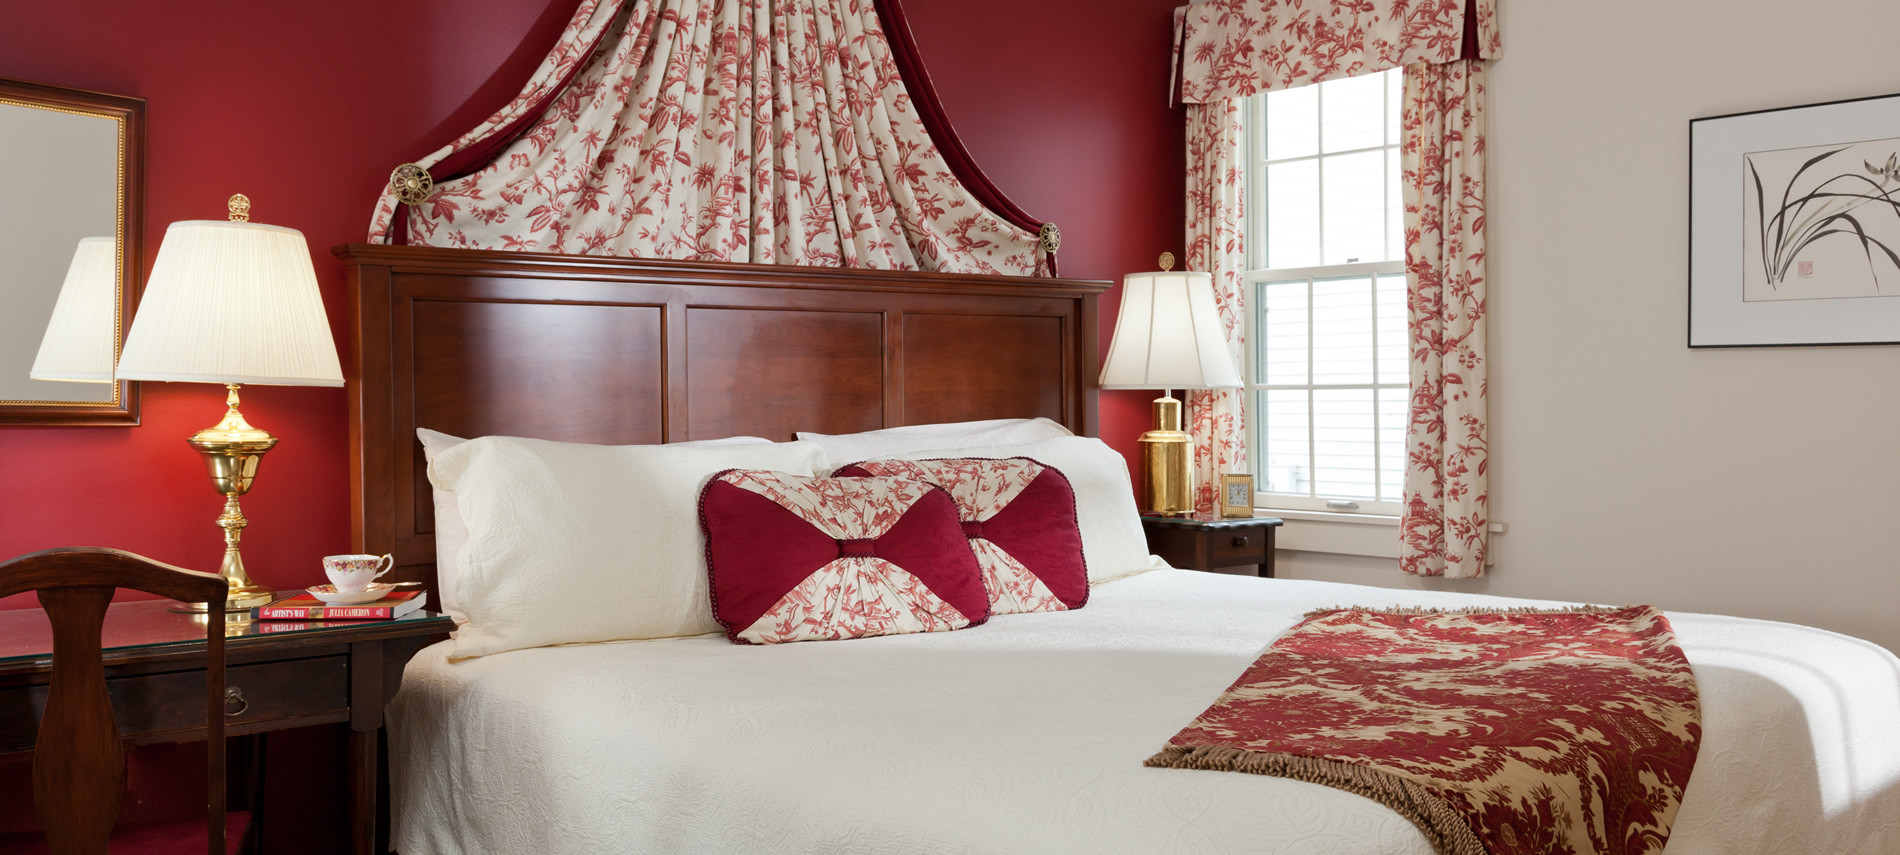 View of the Kings size bed with a white comfortor. Deep Red wall with white and red flower fabric from the head board to the ceiling to match the curtains on the wall